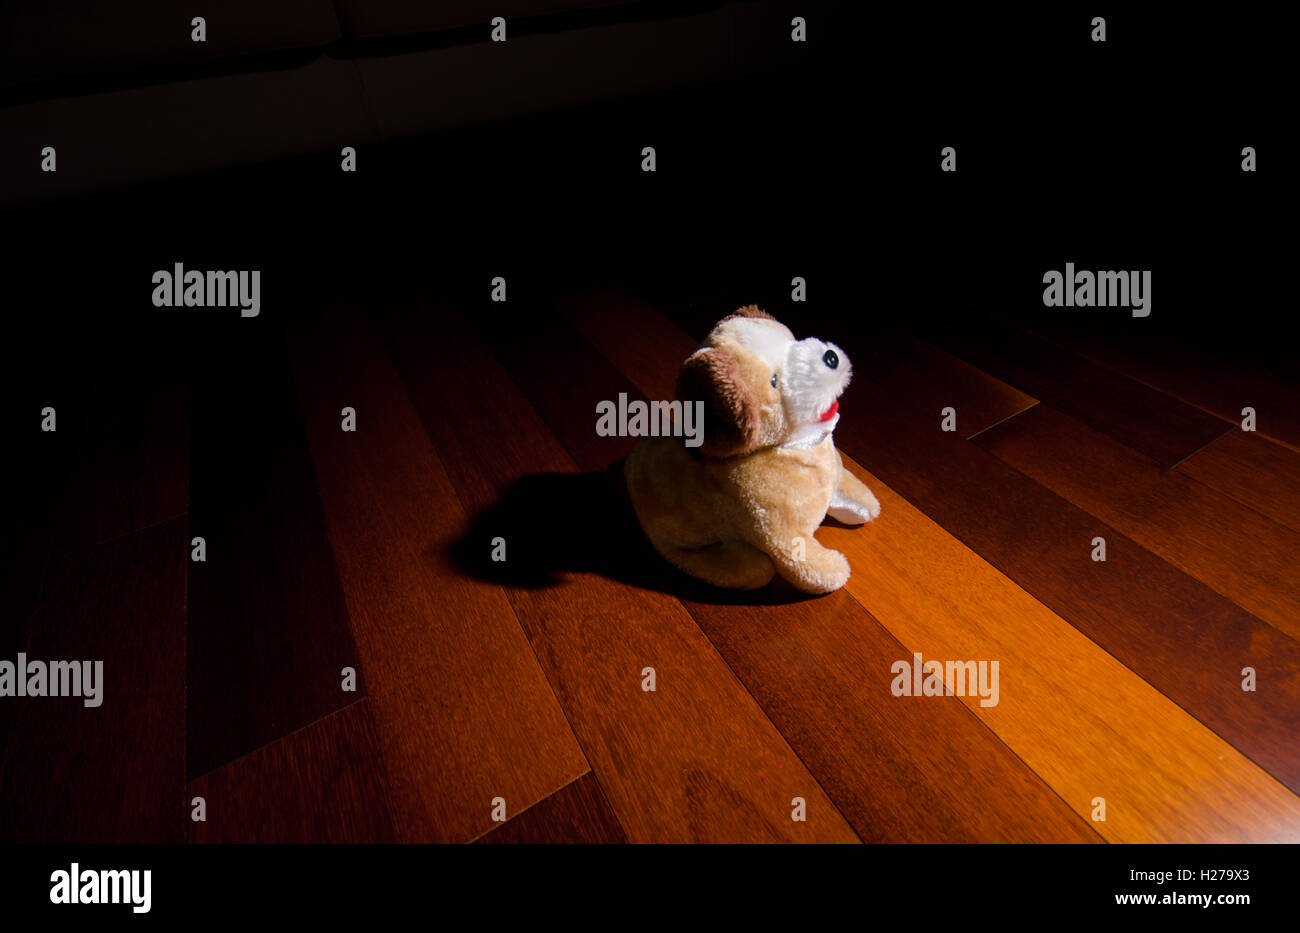 Toy Plush Puppy dog sitting in front of spotlight - Stock Image